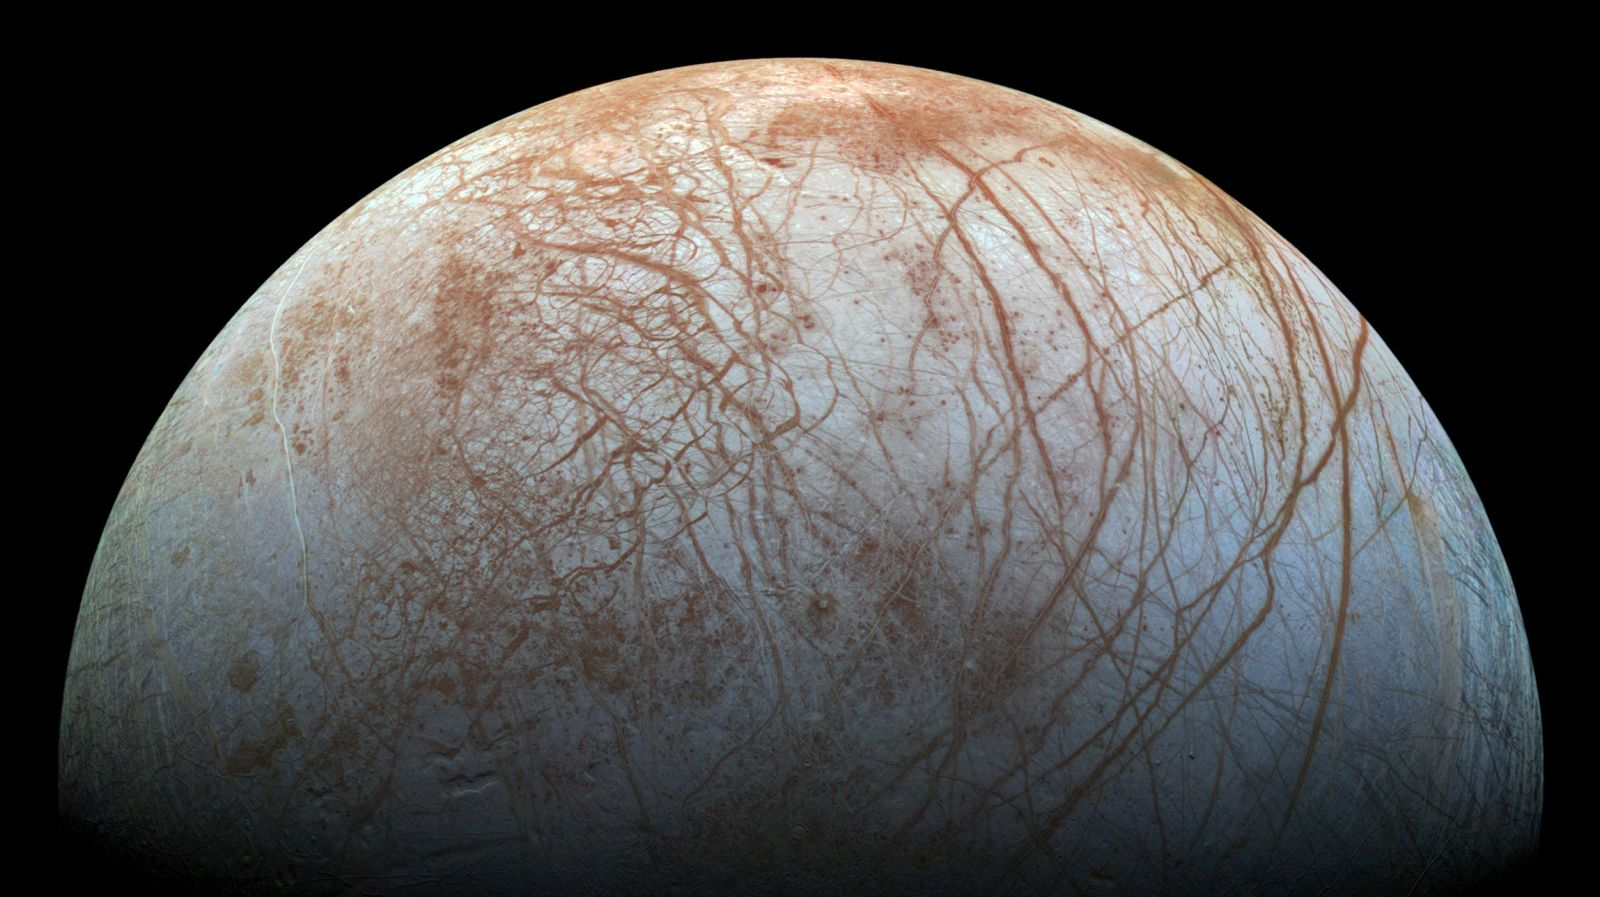 This image of Europa, in which surface fractures are visible, was taken by NASA's Galileo spacecraft during the 1990s. If there is life on Europa, it may be beneath the moon's icy crust in a subsurface ocean. Credit: NASA/JPL-Caltech/SETI Institute